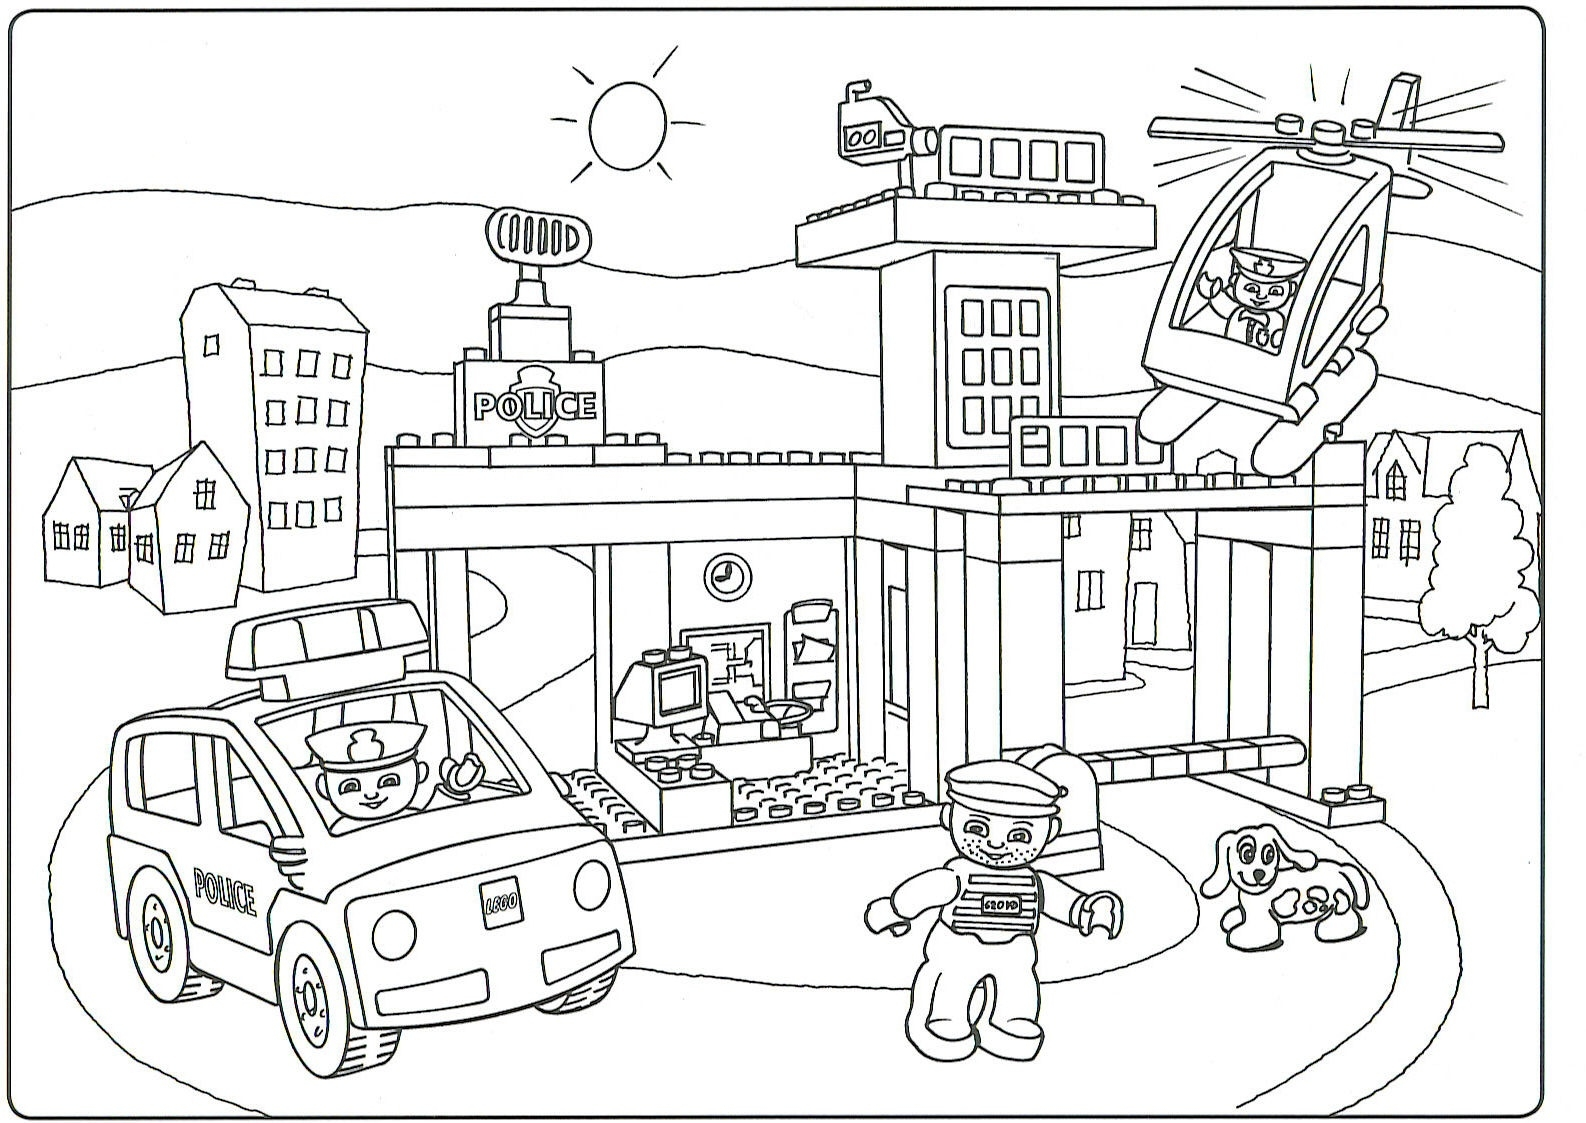 Lego City Coloring Pages printable for free